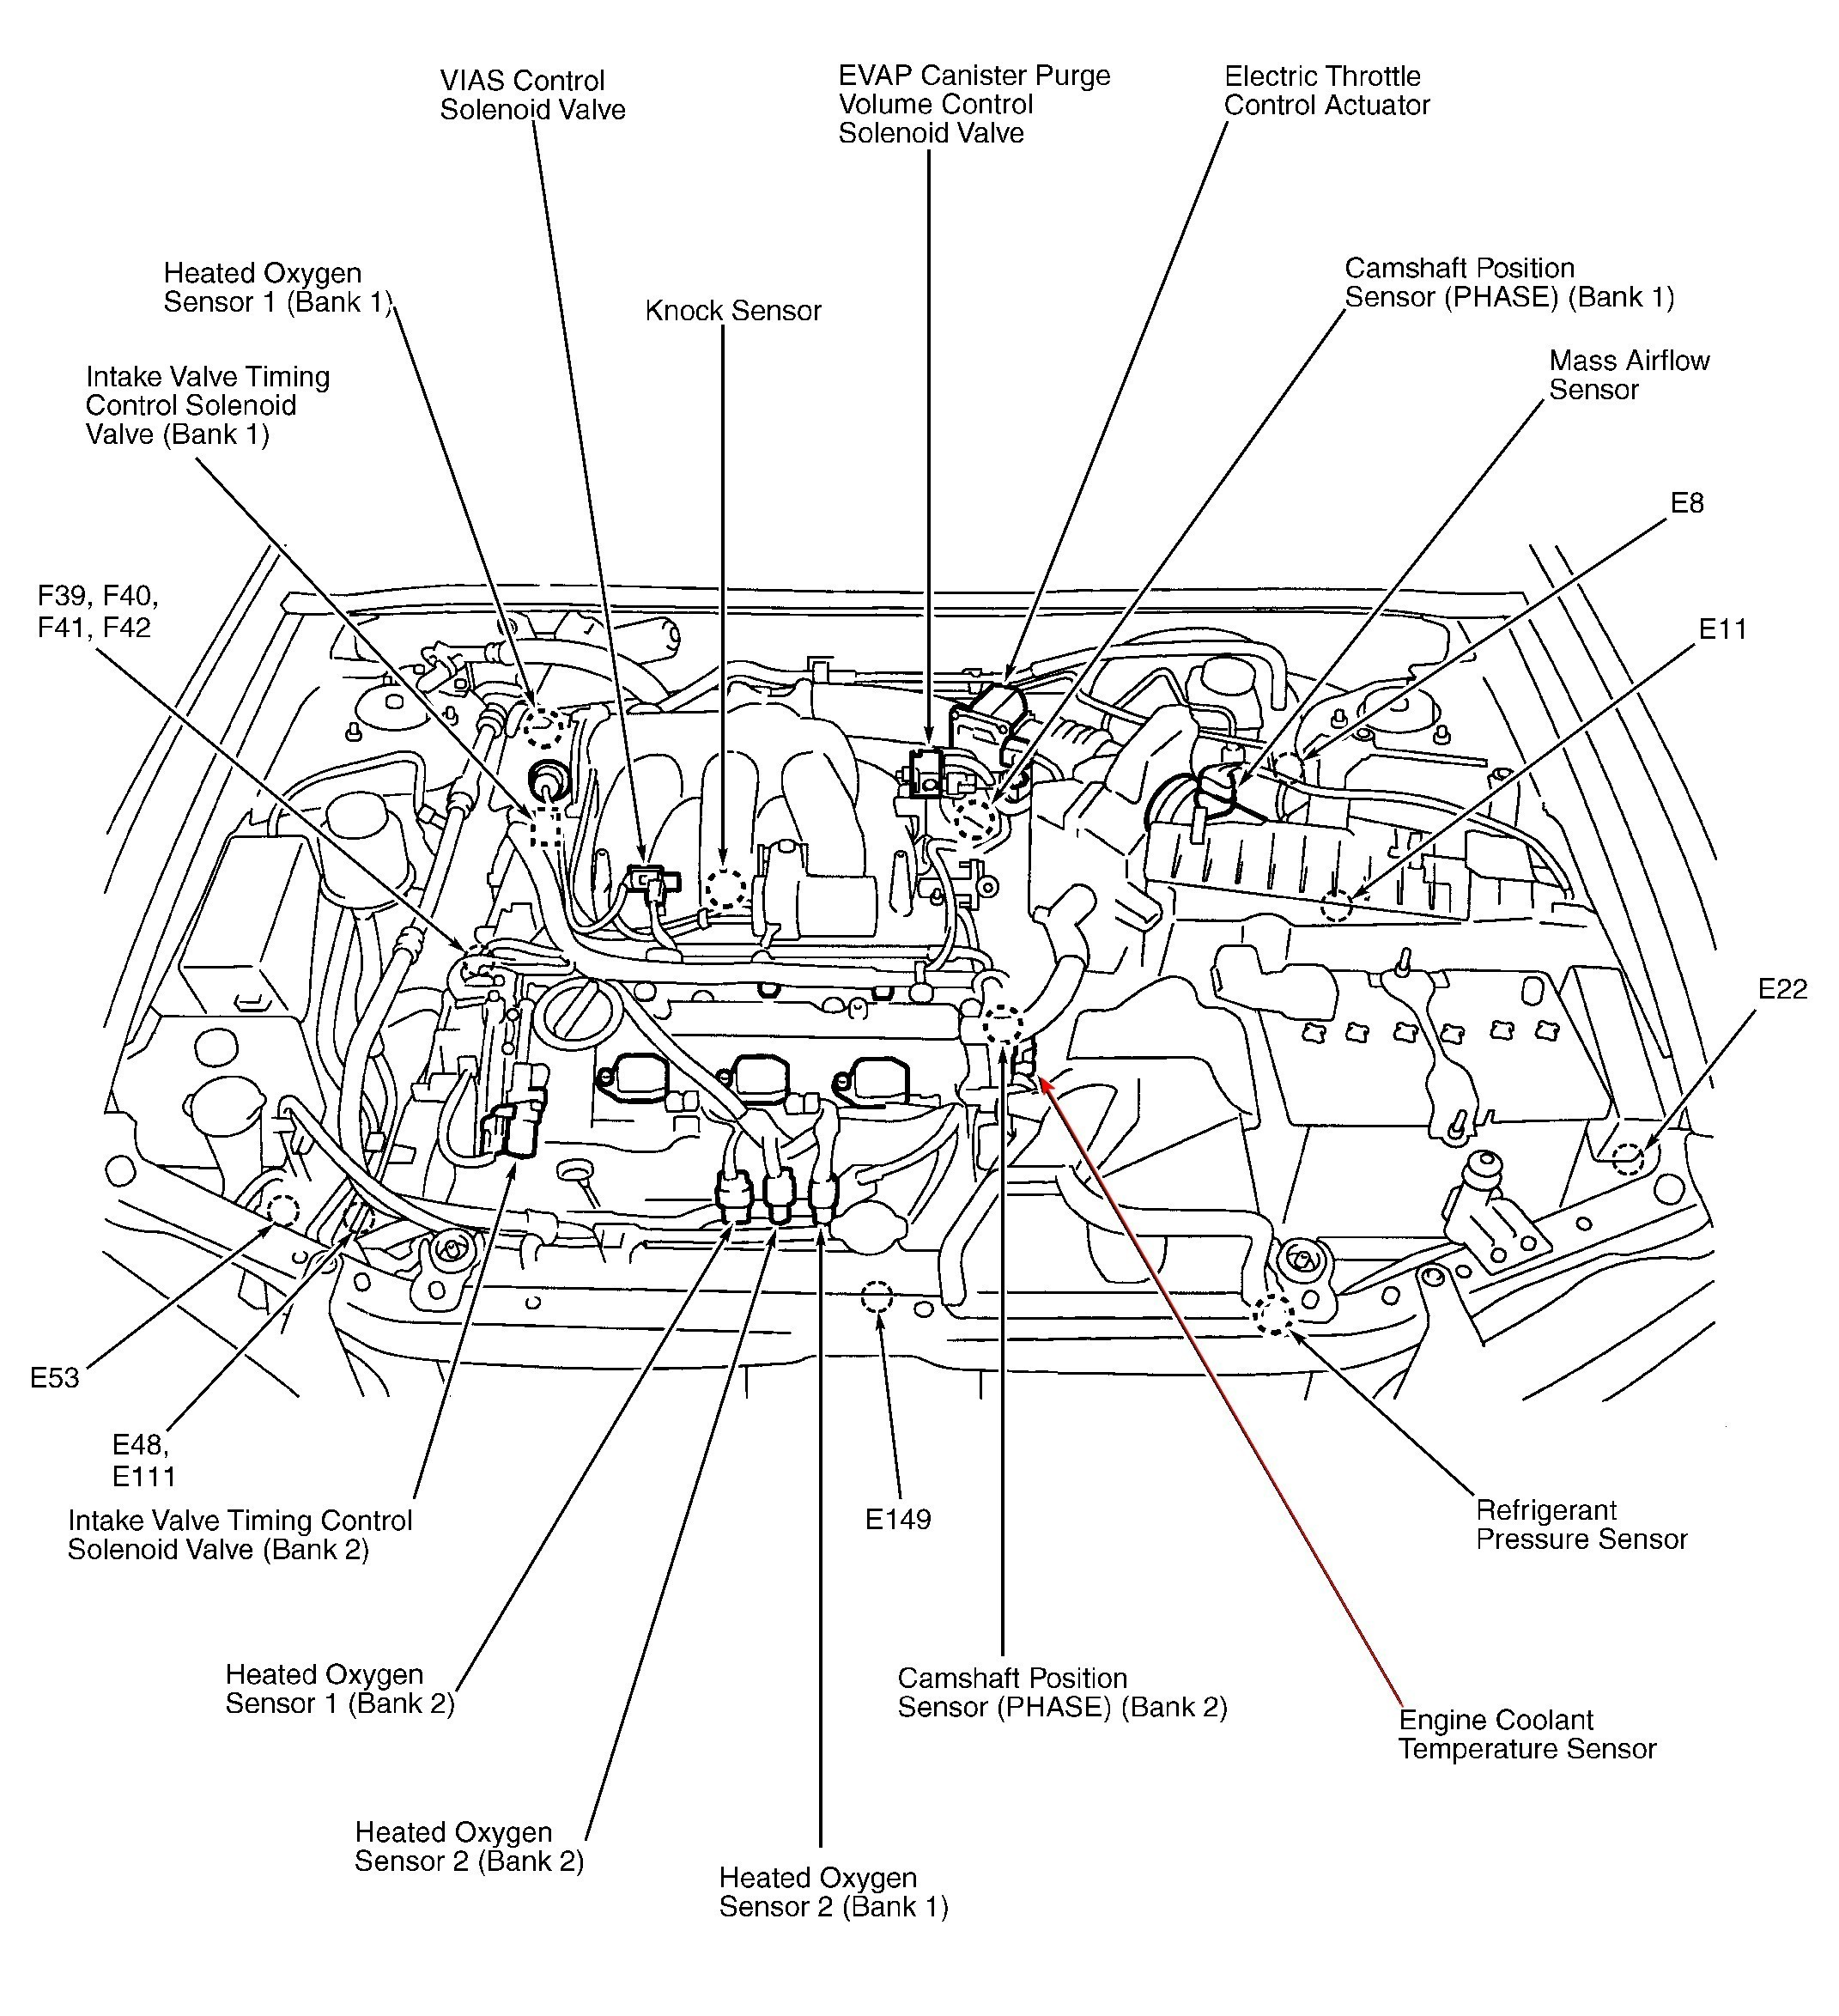 Honda Gx160 Parts Diagram Homelite Ez Automatic Parts Diagram Wiring Wiring Diagrams Of Honda Gx160 Parts Diagram